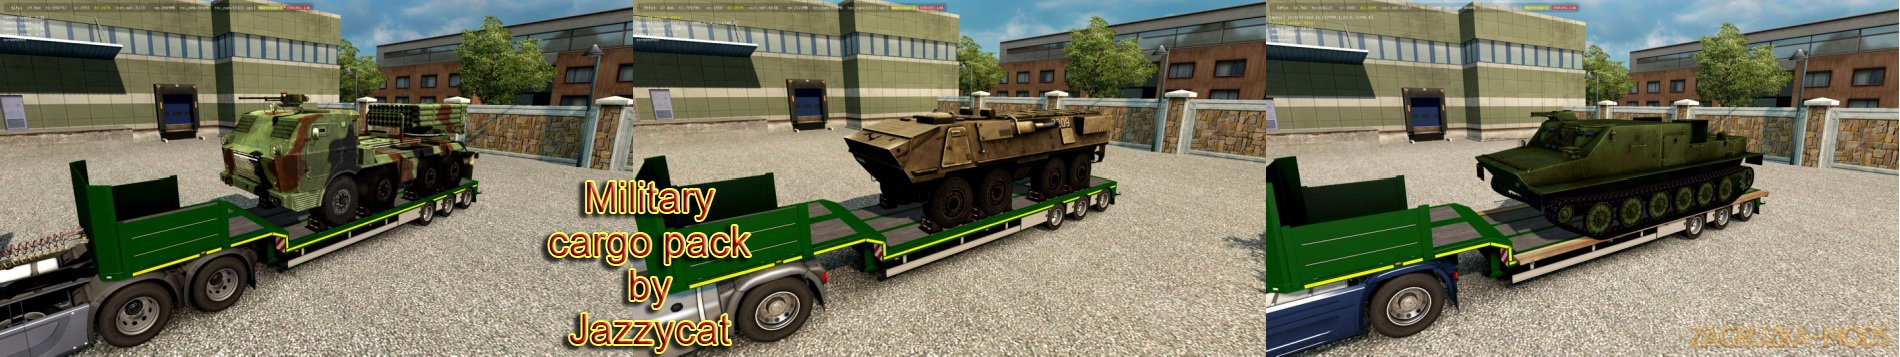 Military Cargo Pack v2.5 by Jazzycat